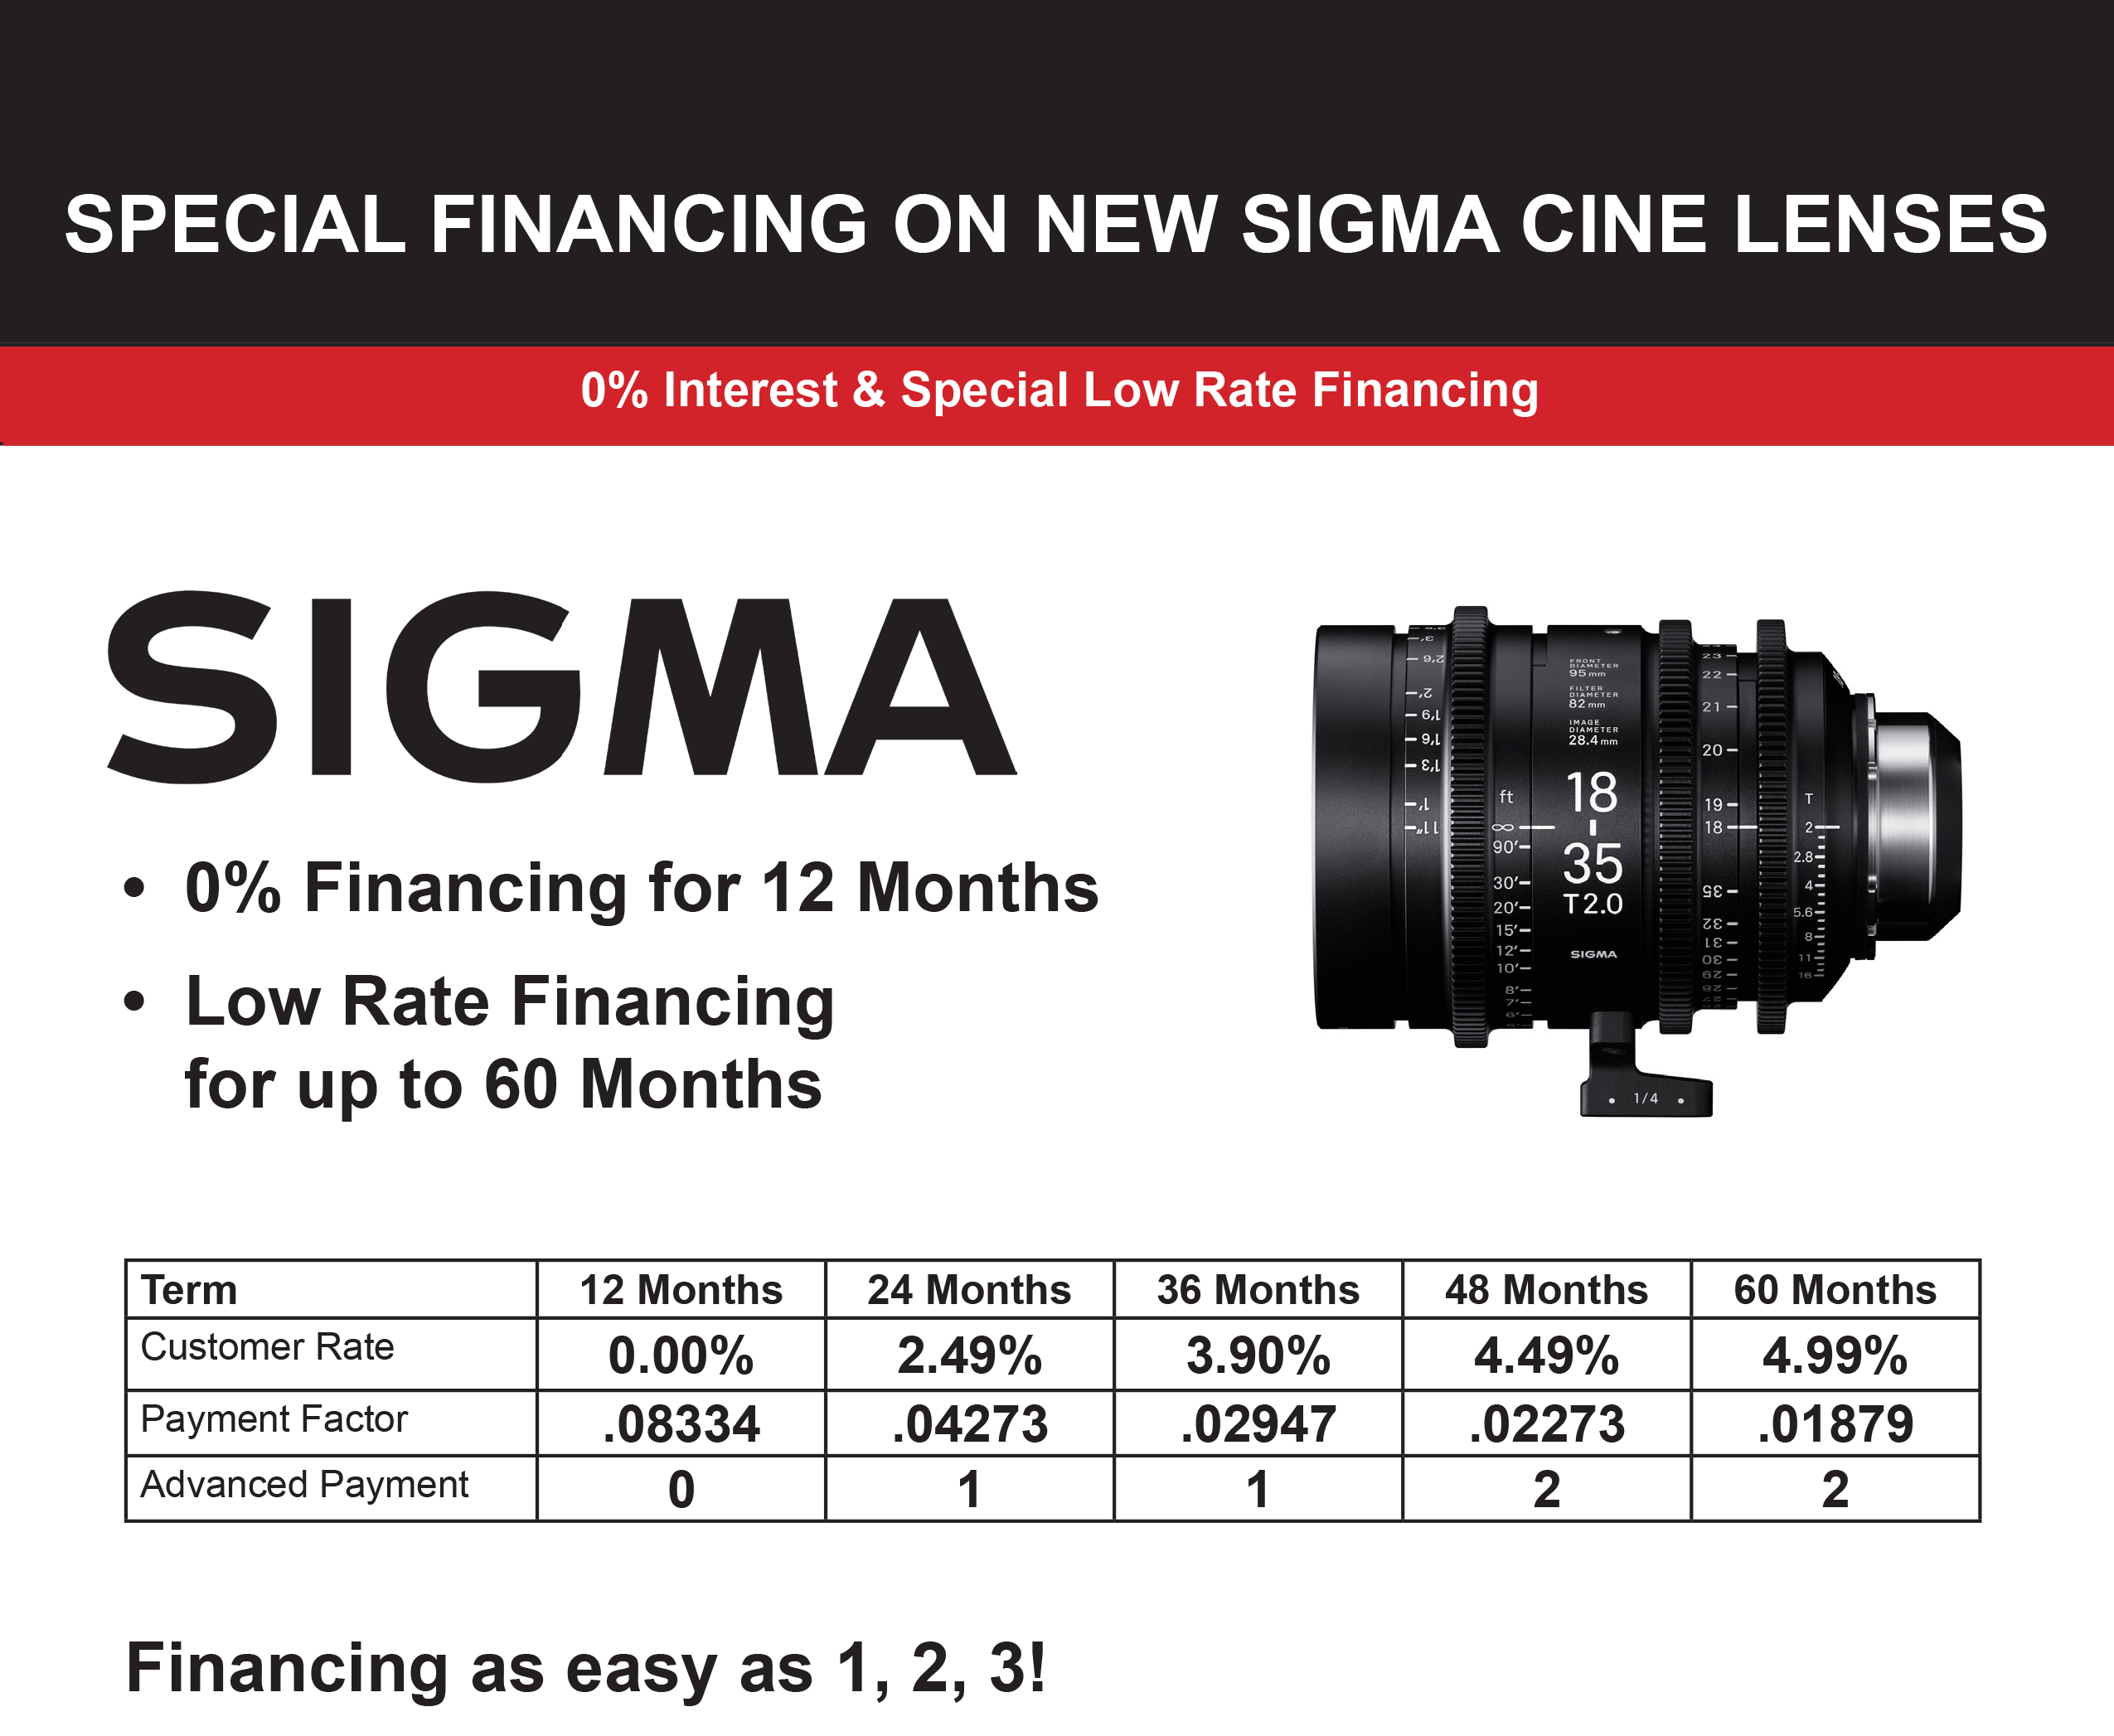 sigma-finance-ad-20181120nr.png